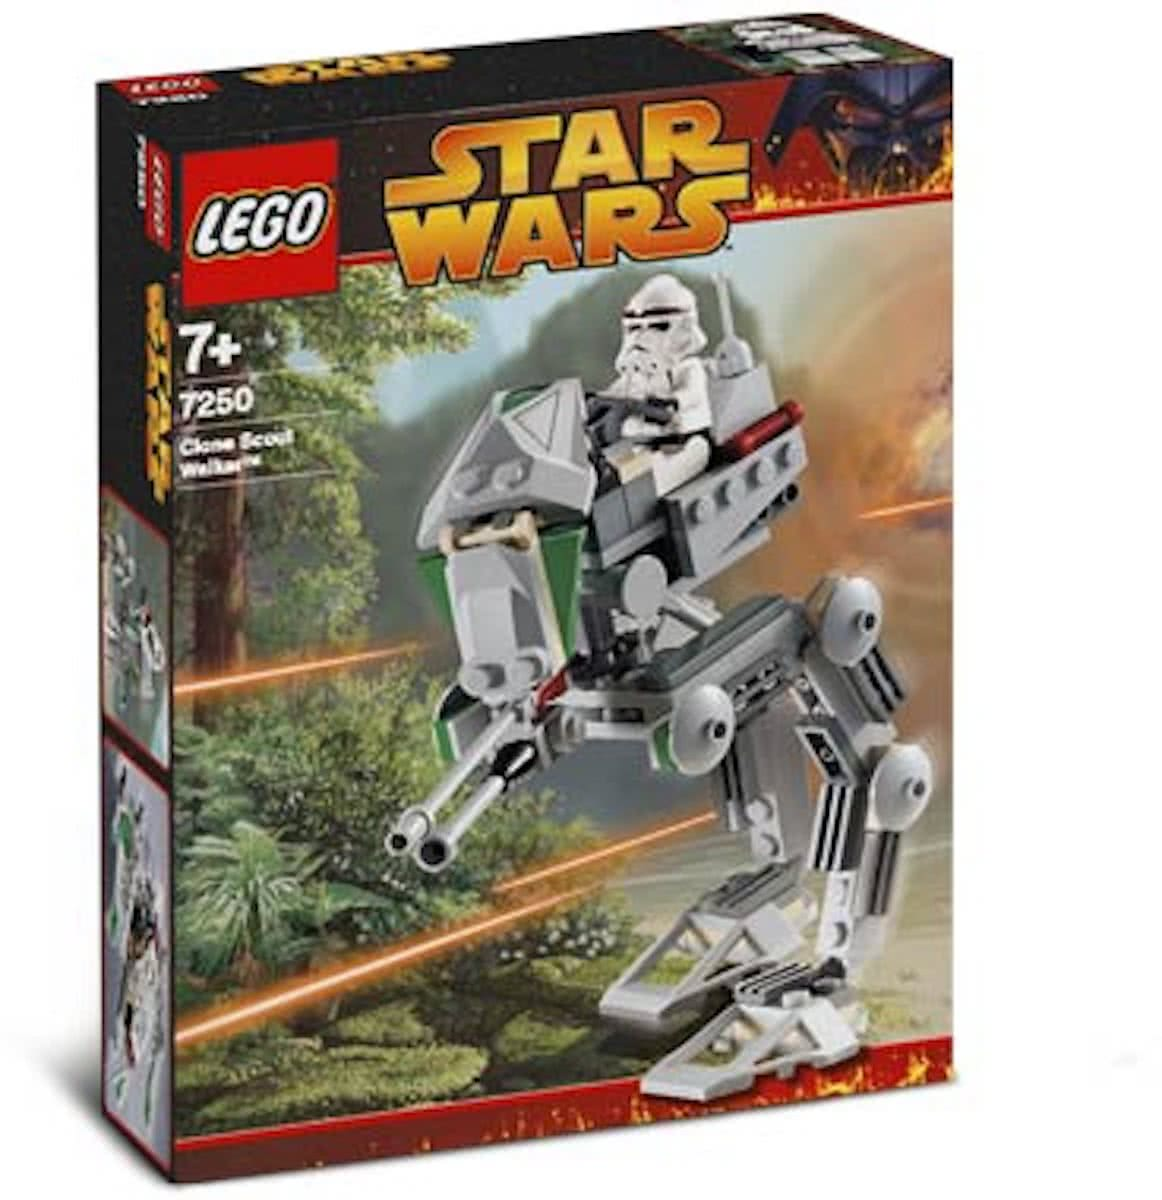 LEGO Star Wars Clone Scout Walker - 7250